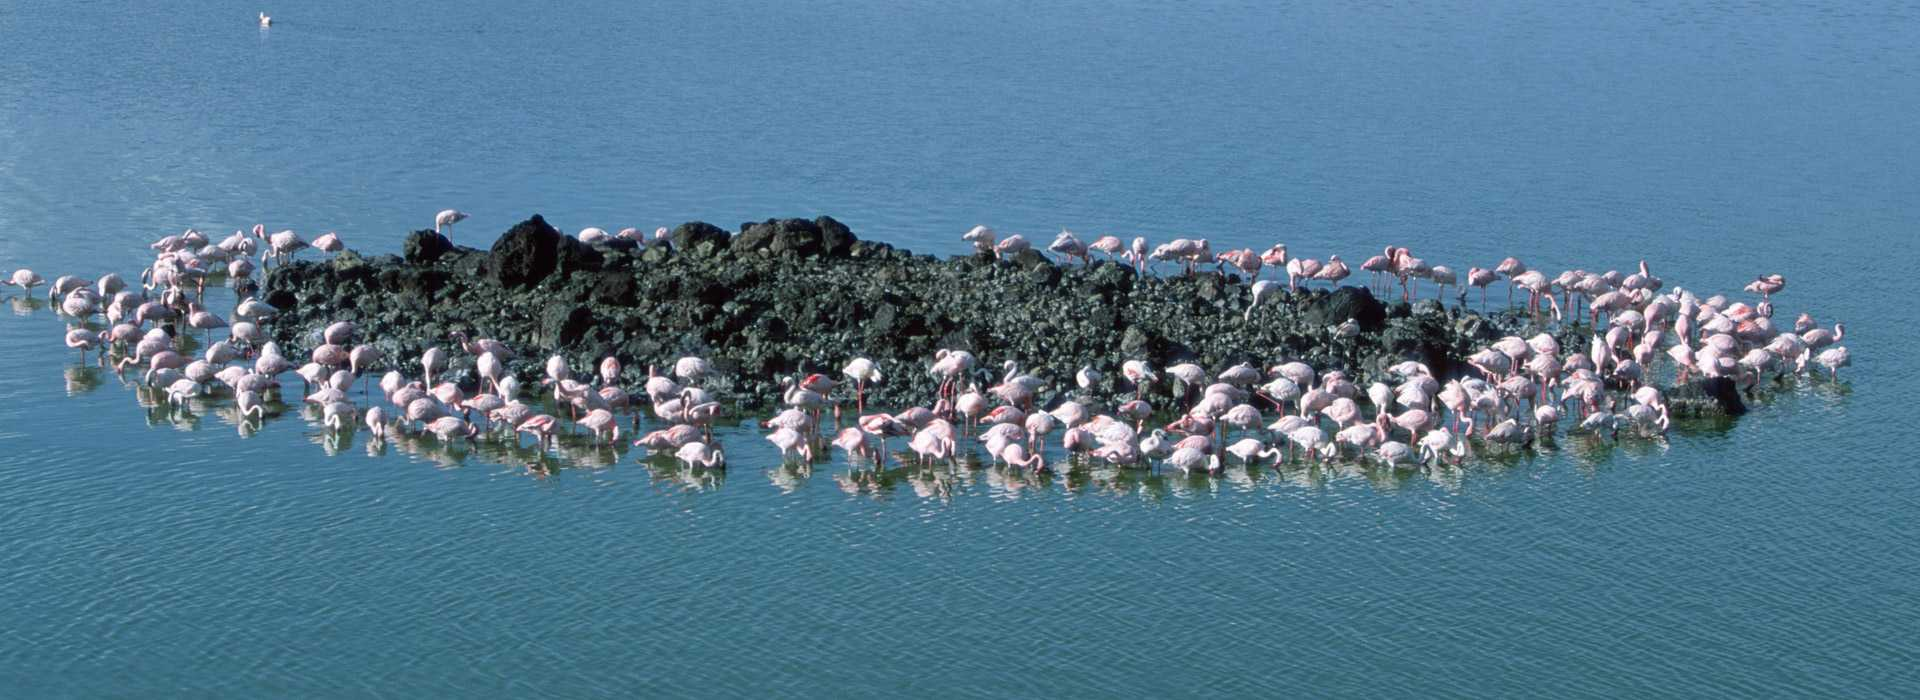 A Large Flock Of Flamingos In Arusha, Tanzania